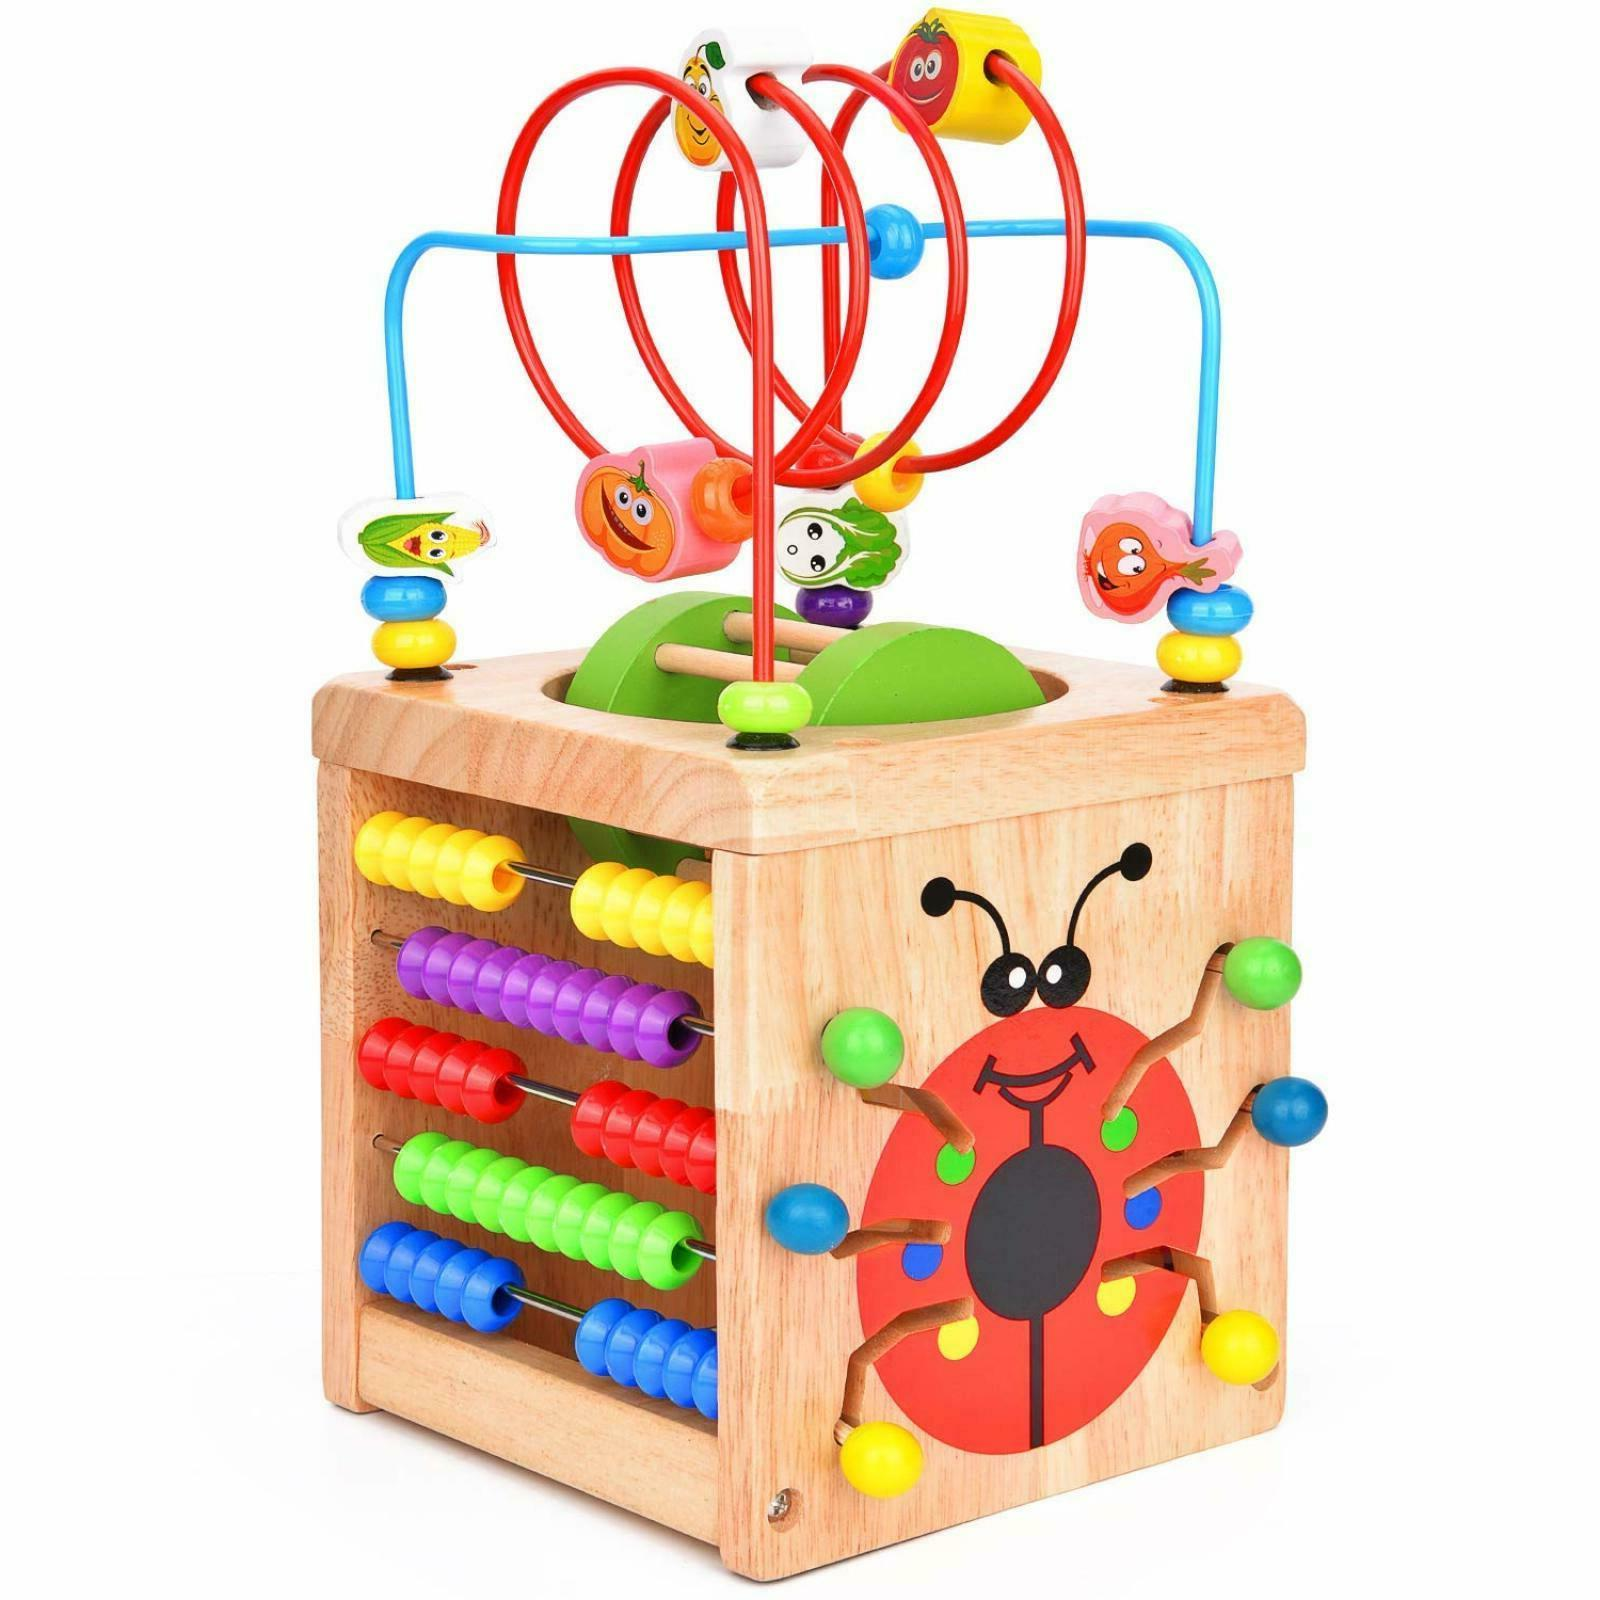 Toddler 6-9 Month Baby Boy Girl Toy Educational Playset Wood